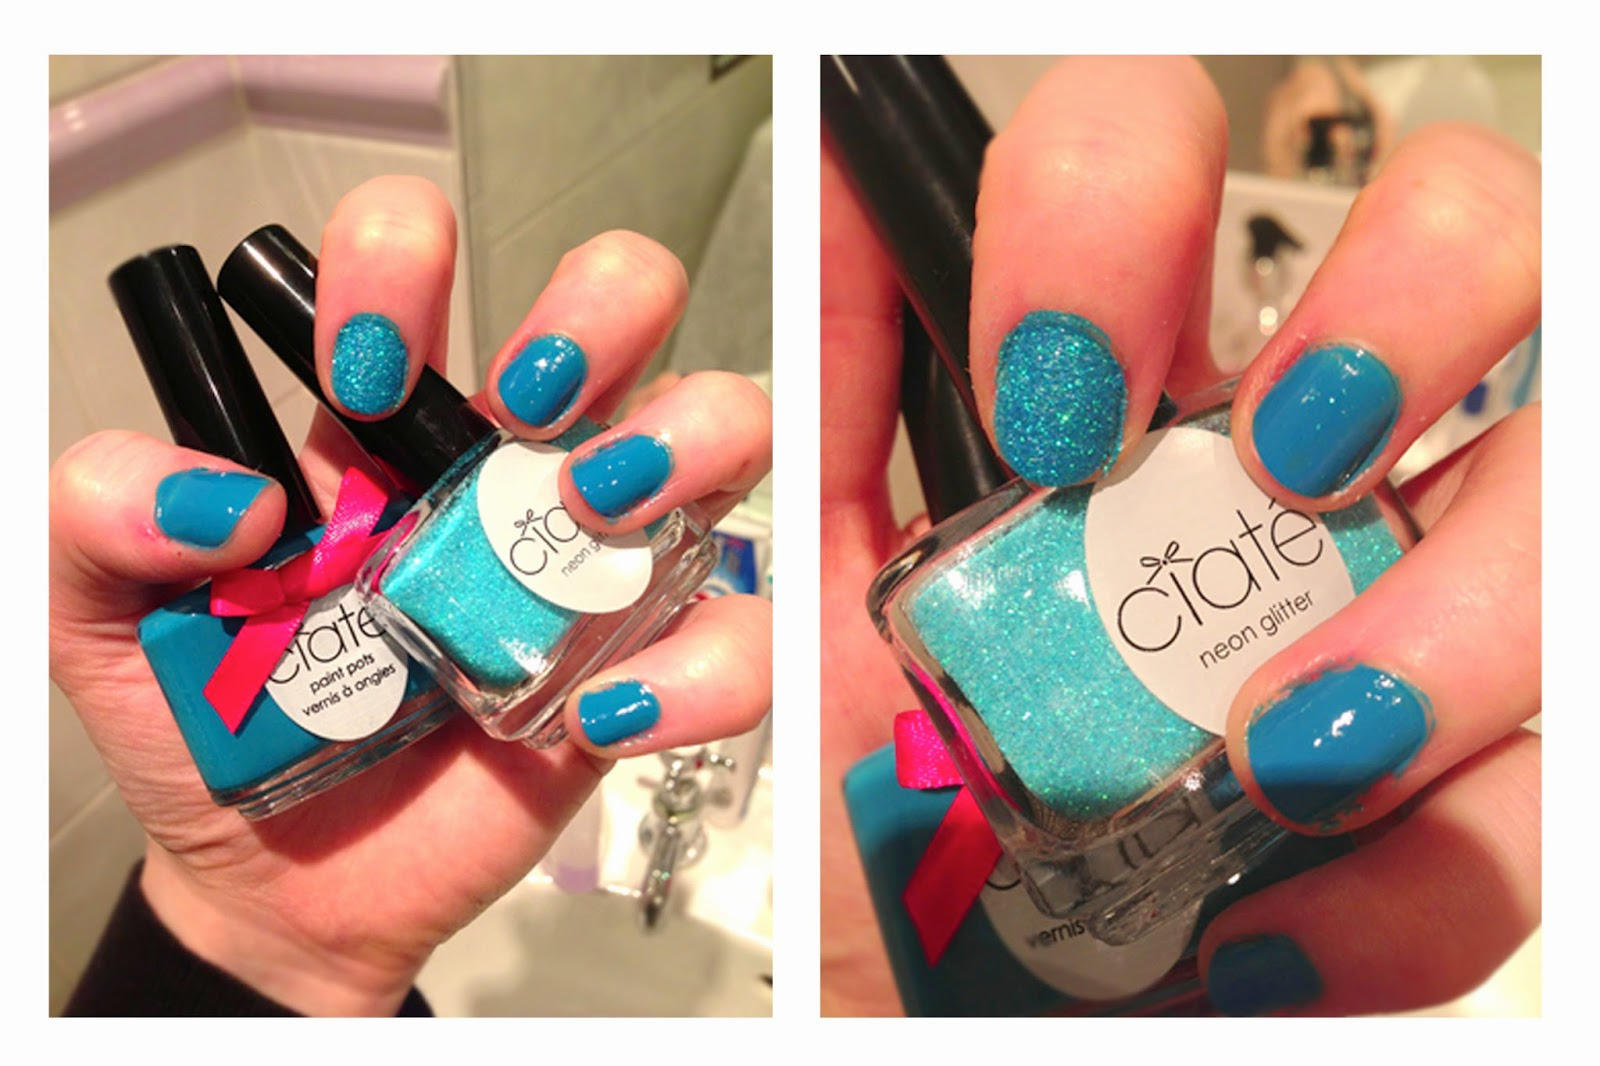 Ciate Neon Nail Polish Set - Absolute cycle